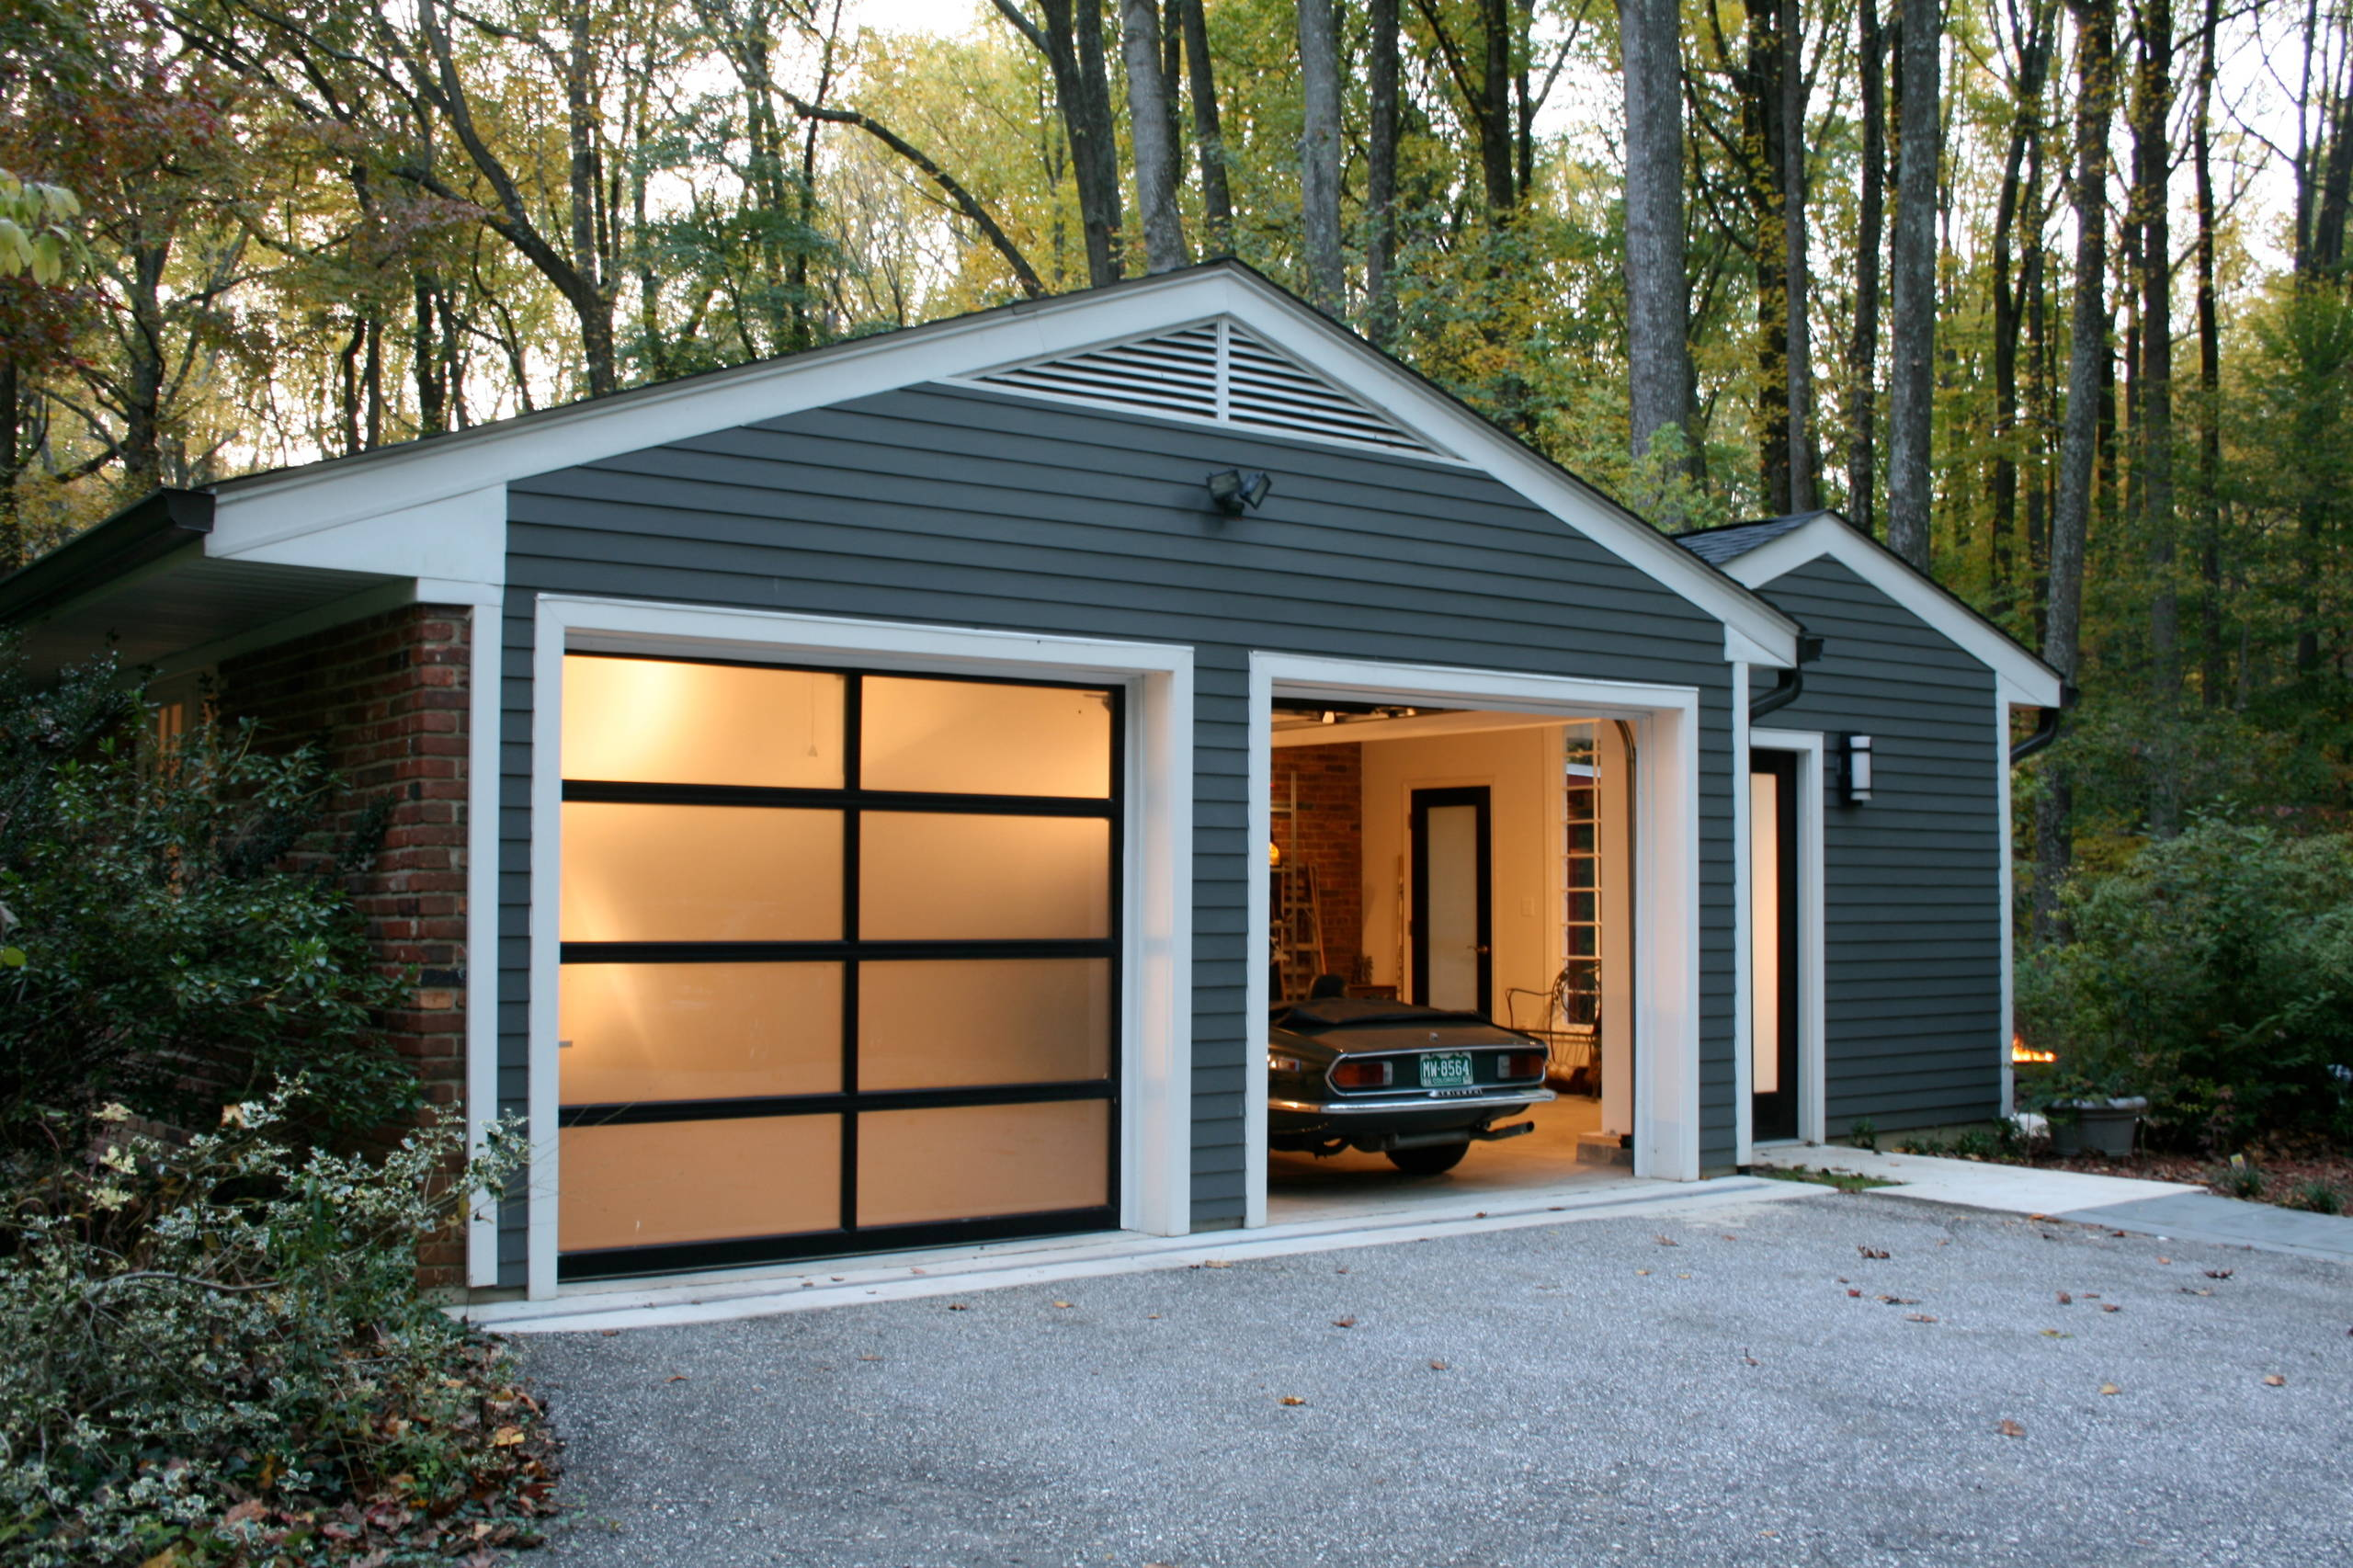 75 Beautiful Modern Detached Garage Pictures Ideas February 2021 Houzz